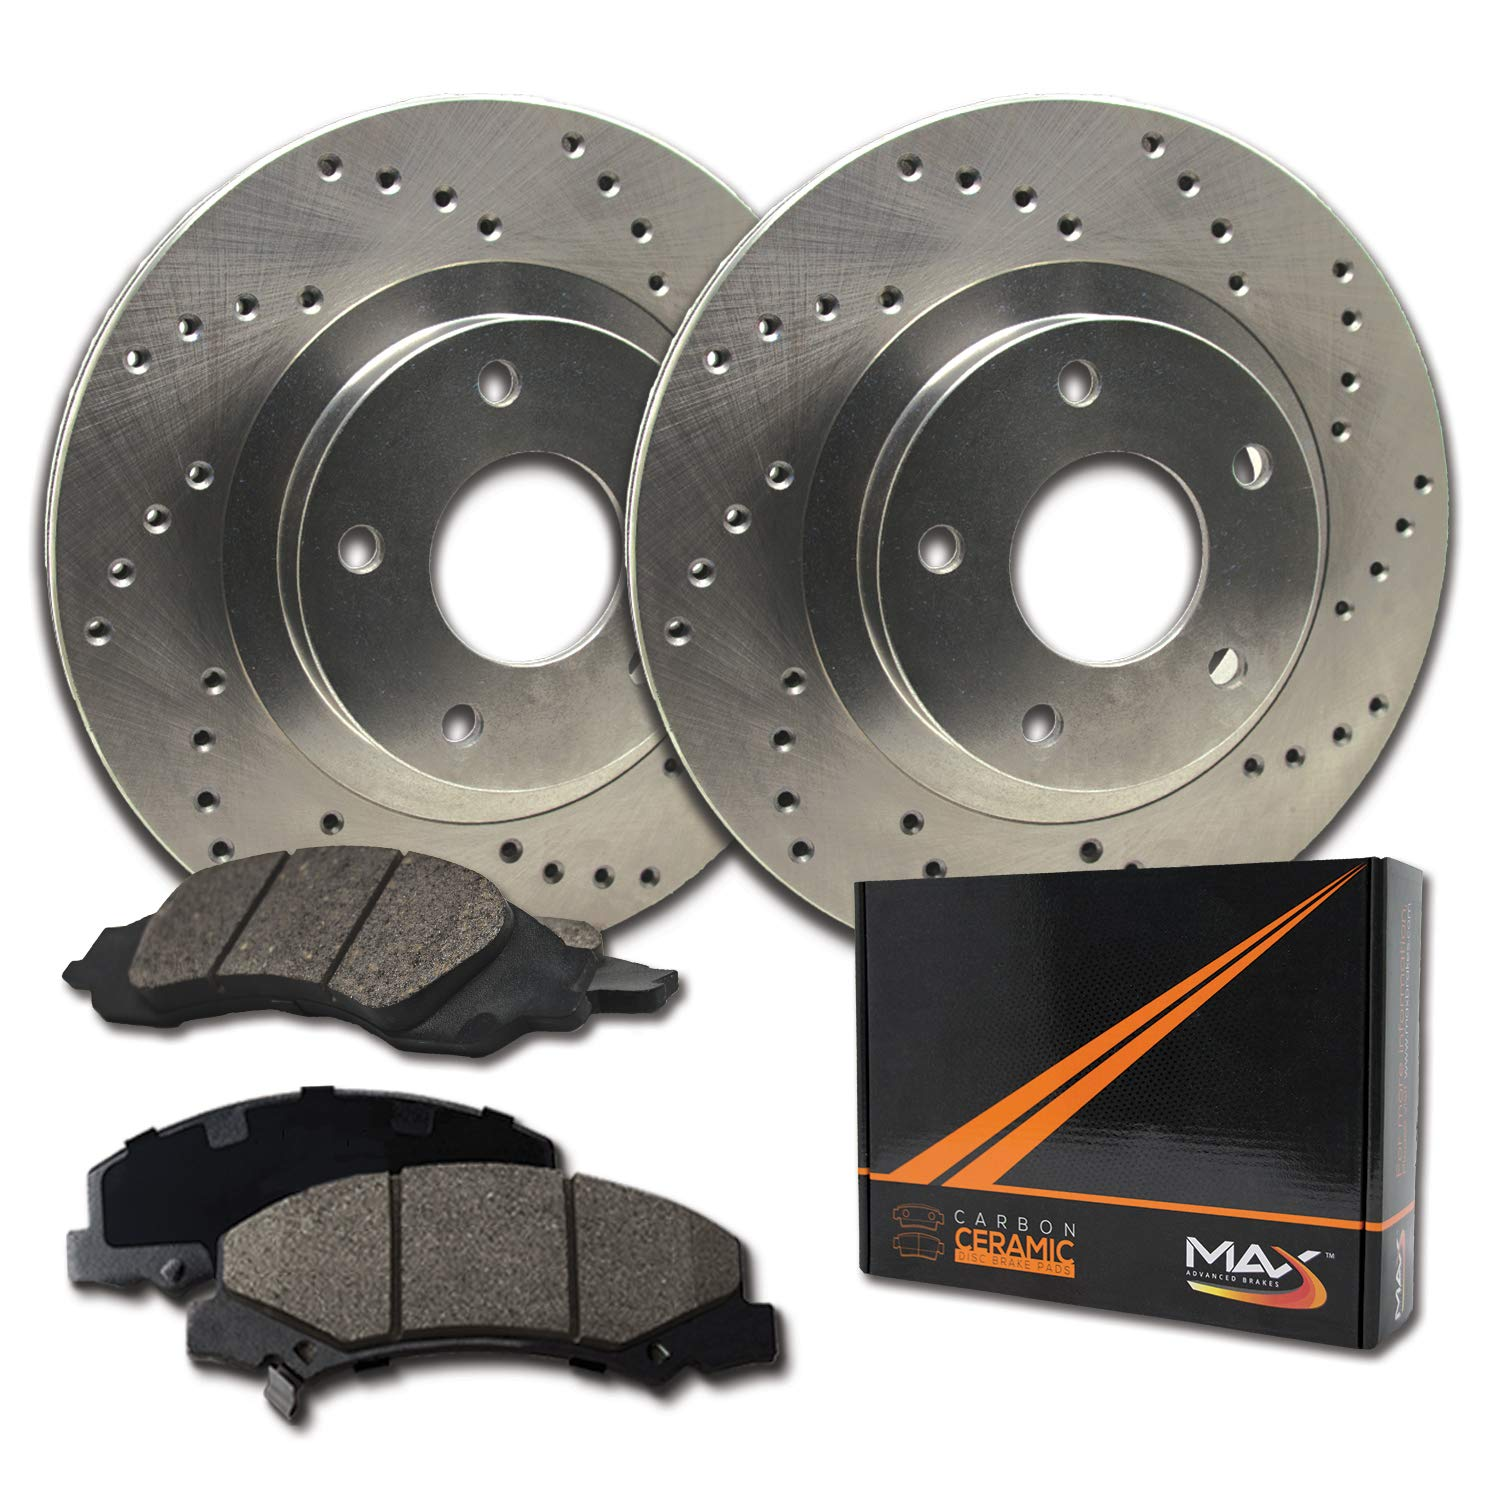 Max Brakes Cross Drilled Rotors w/Ceramic Brake Pads Front Performance Brake Kit KT049821 [Fits:2004-2007 BMW 525i 530xi ] Max Advanced Brakes